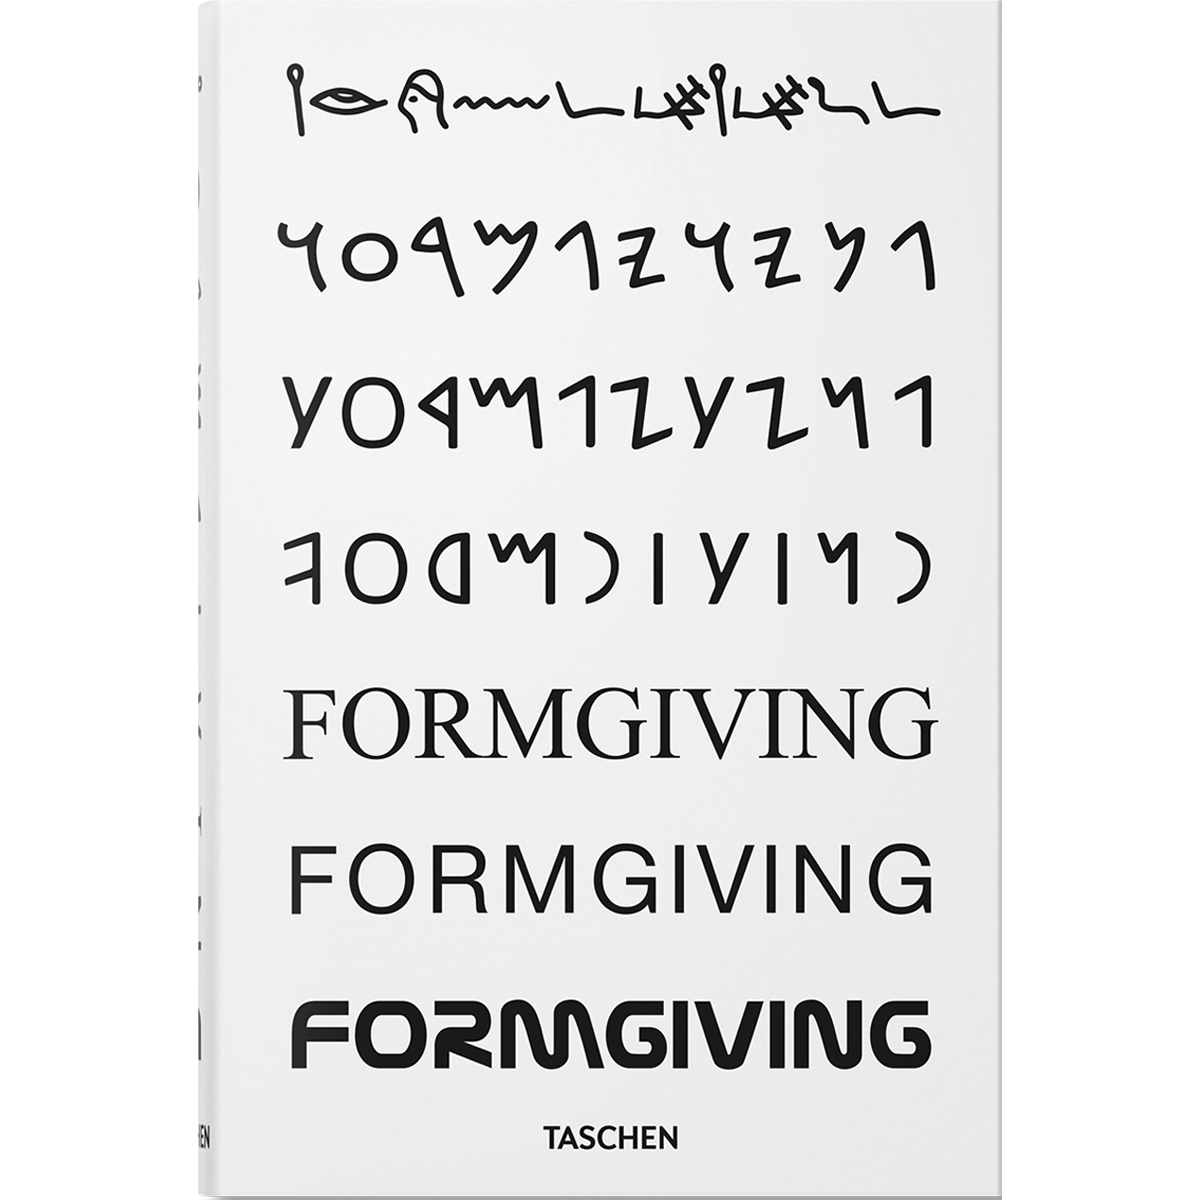 Formgiving